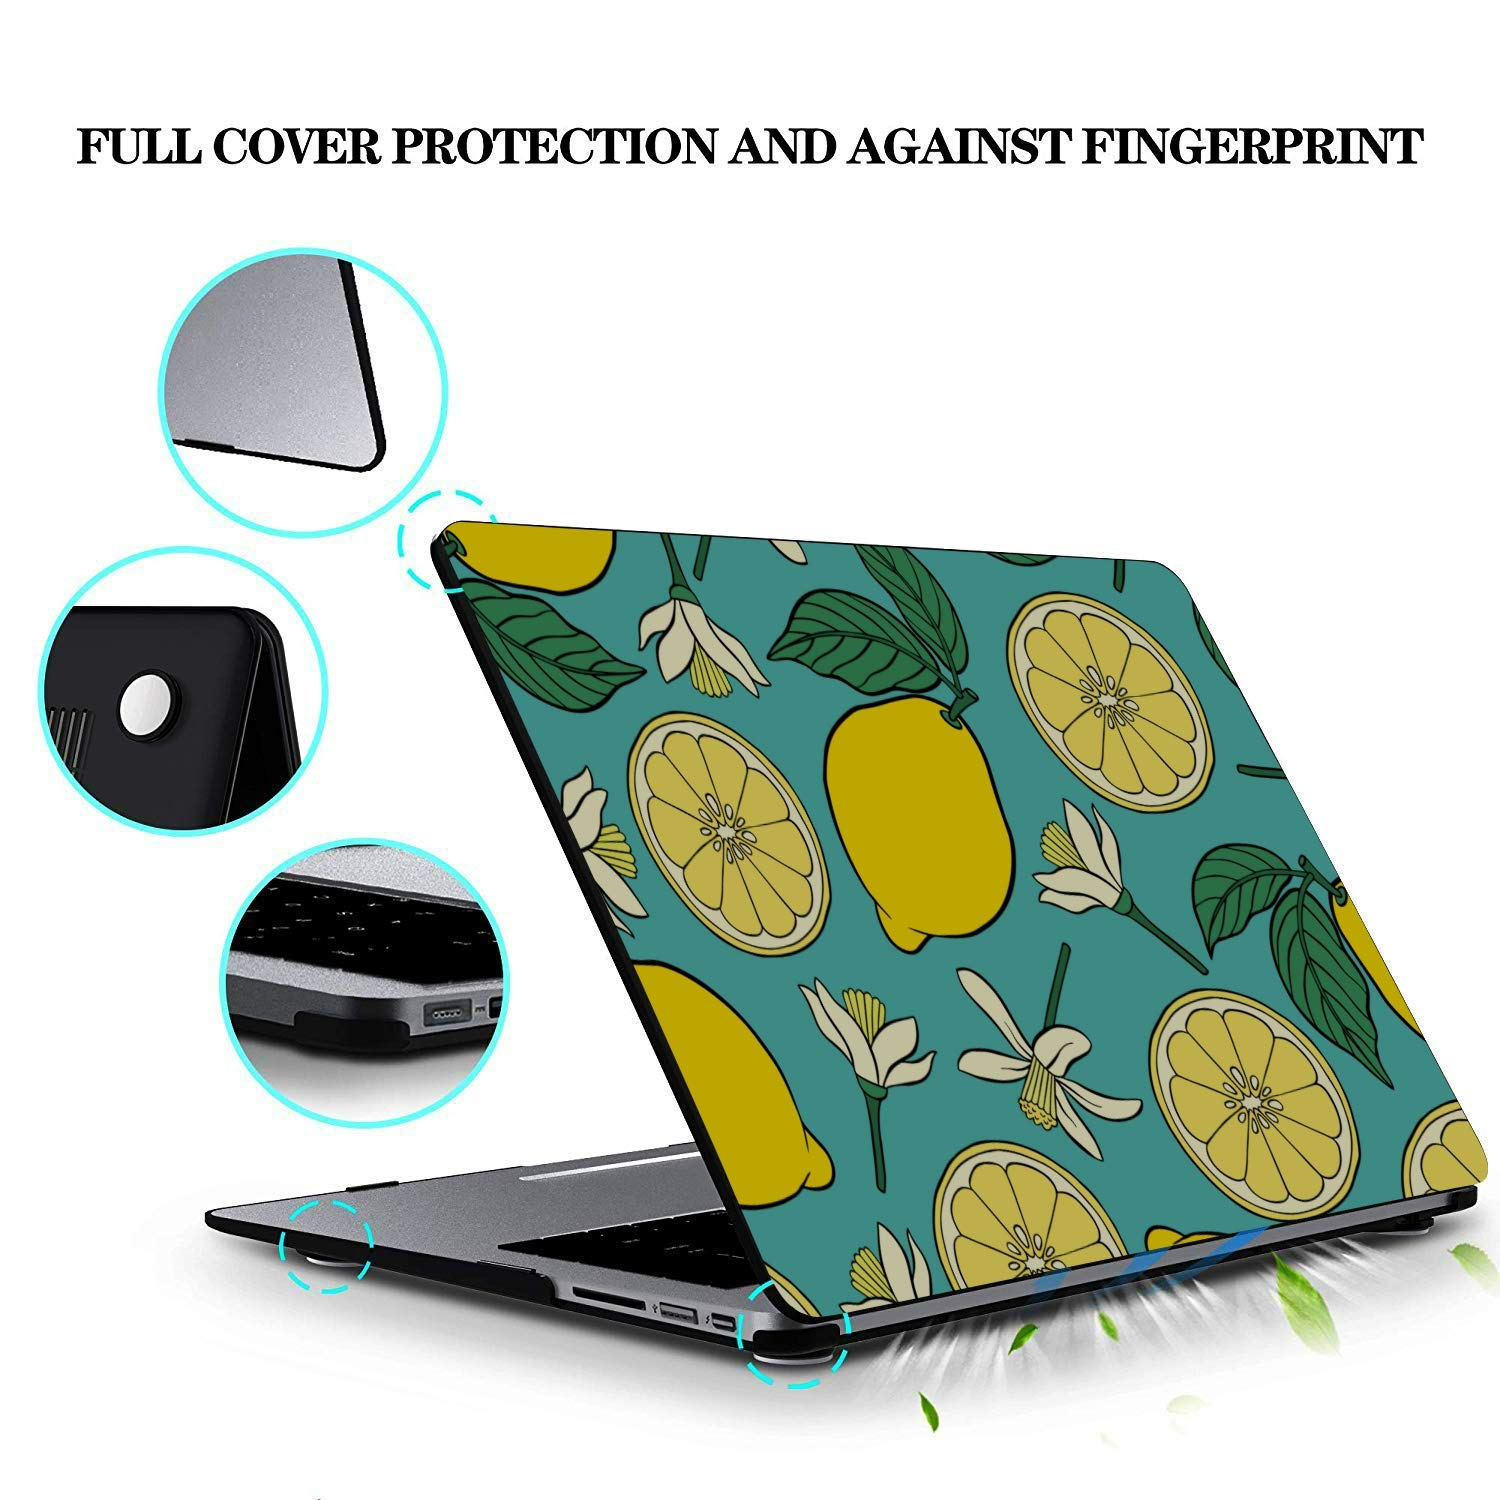 MacBook Case Summer Fashion Flower Fruit Lemon Plastic Hard Shell Compatible Mac Air 11 Pro 13 15 MacBook Air Laptop Cover Protection for MacBook 2016-2019 Version